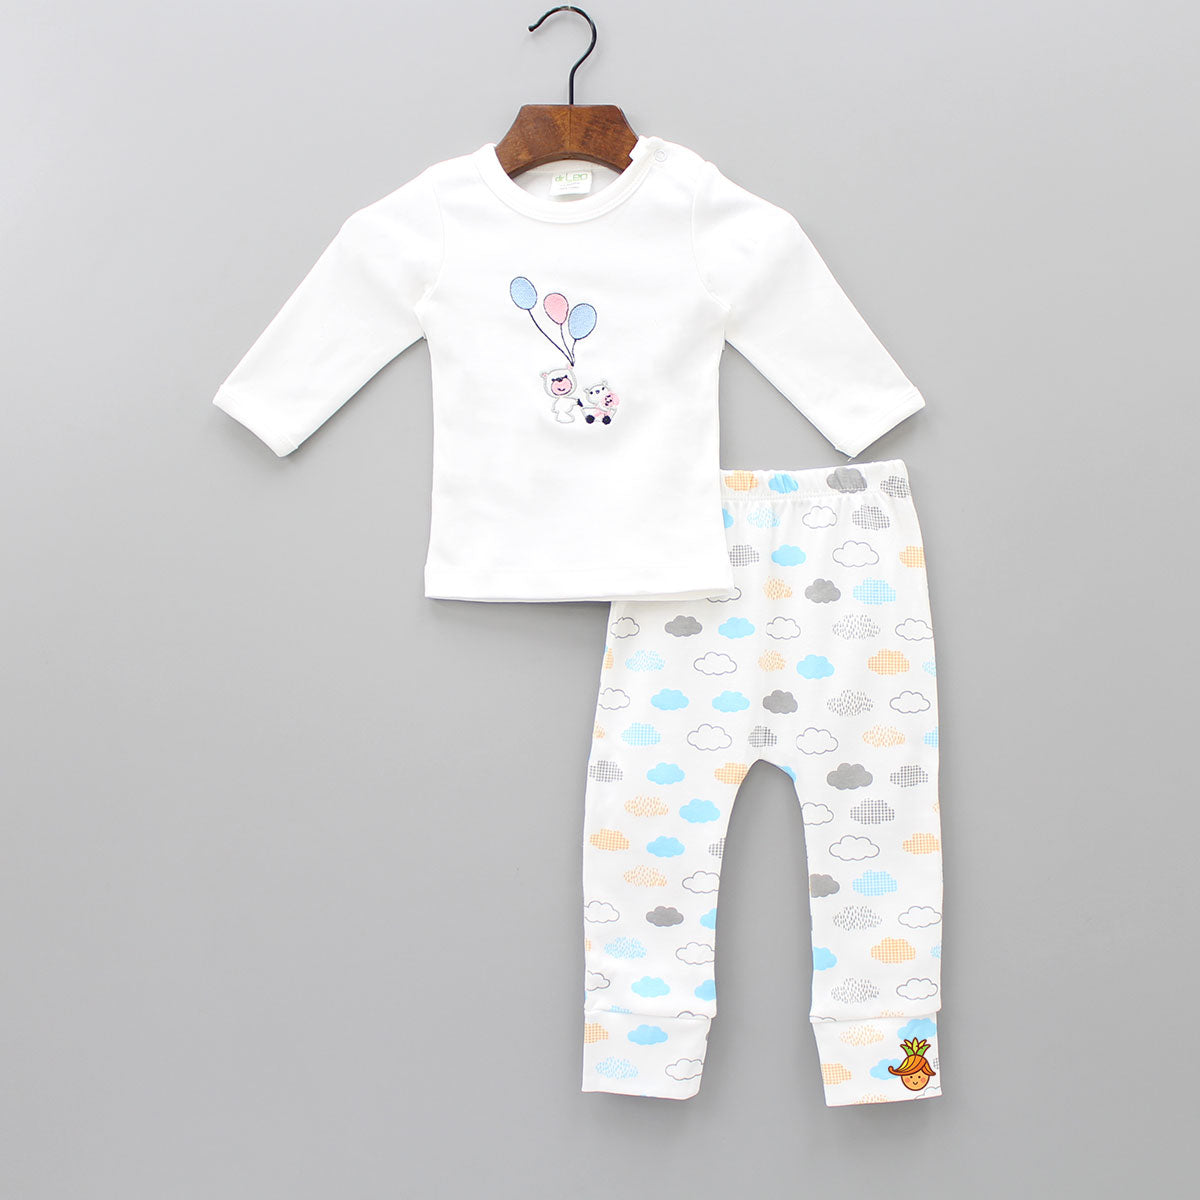 Tedd and Balloon Embroiderd Top With Cloud Print Pant Set